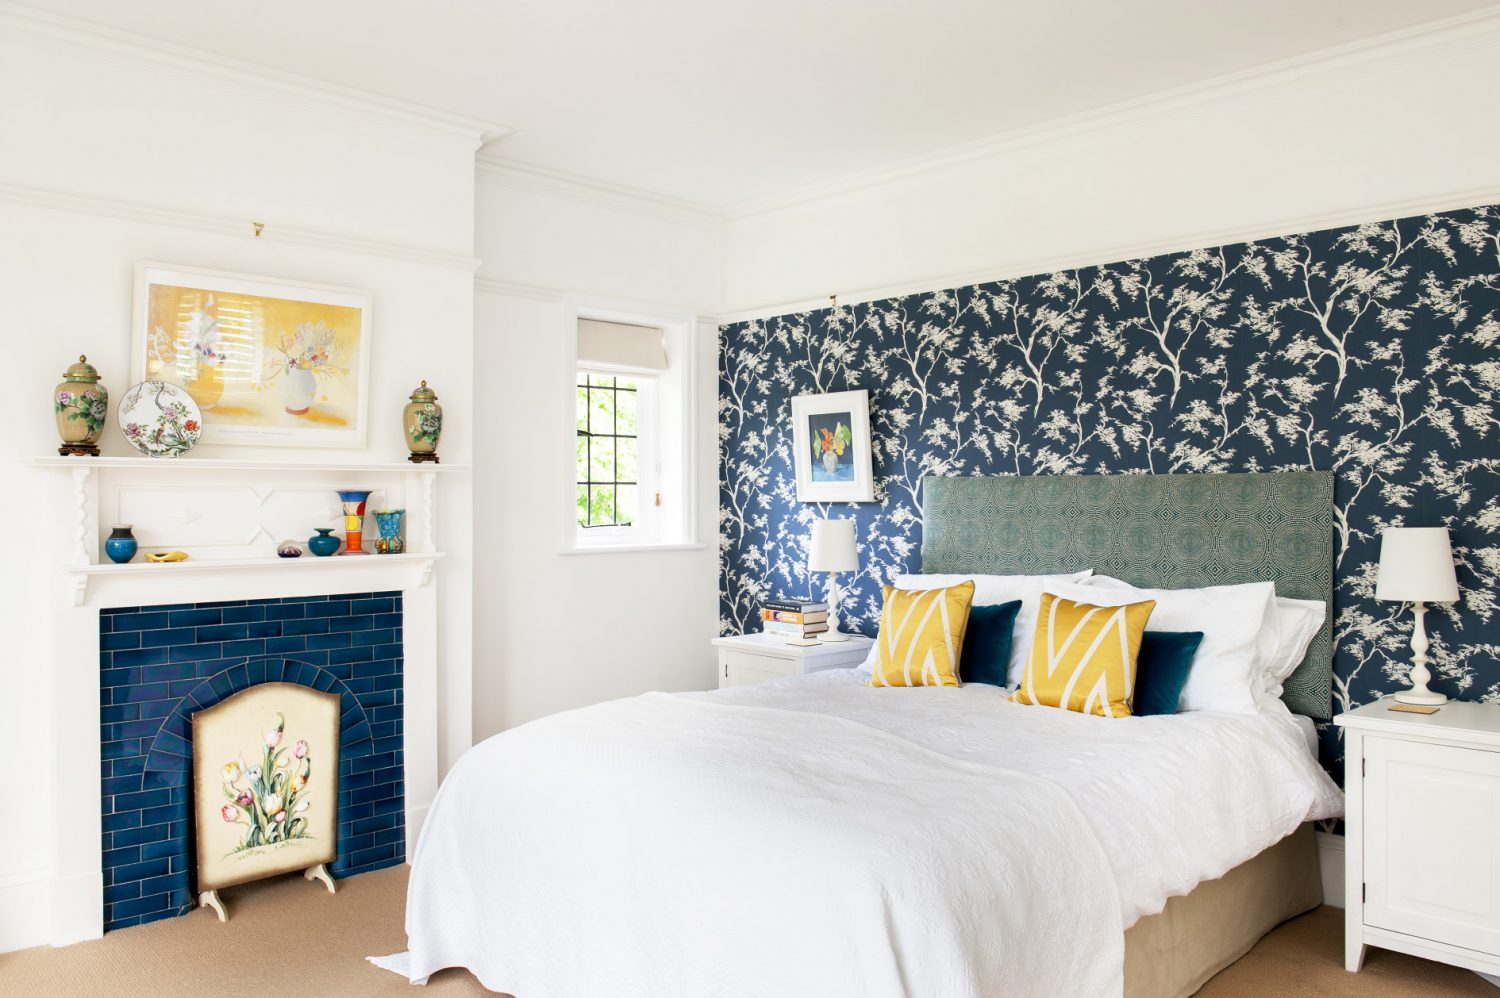 With off white walls on three sides and a lovely shade of indigo patterned wallpaper on the fourth – which picks up the blue tiles of the fireplace – it is a very calm room